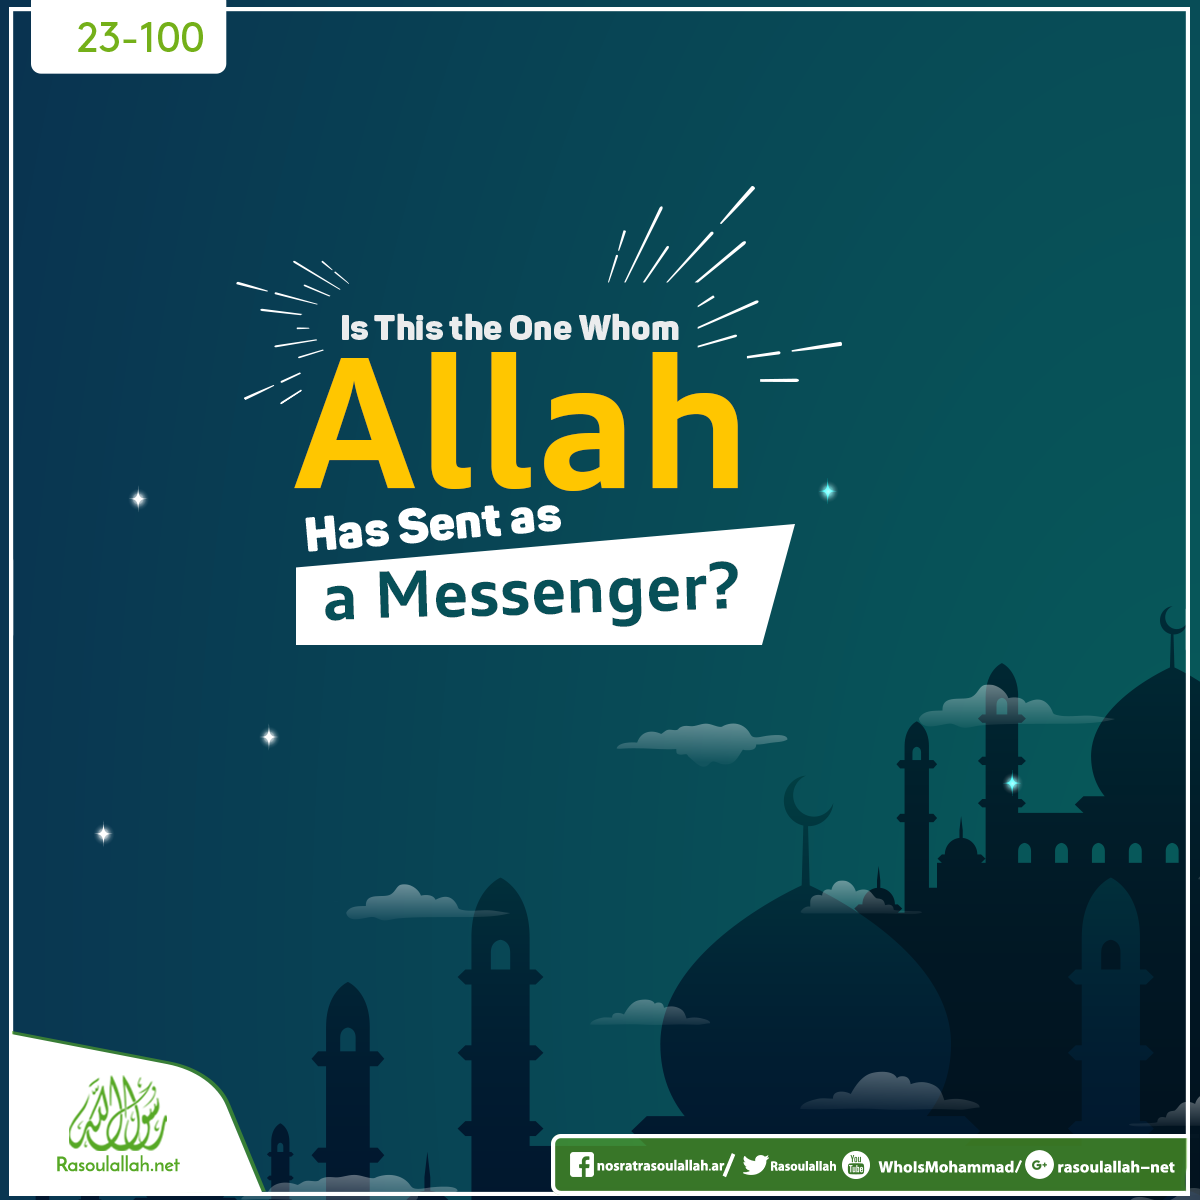 Is this the one whom Allah has sent as a Messenger?